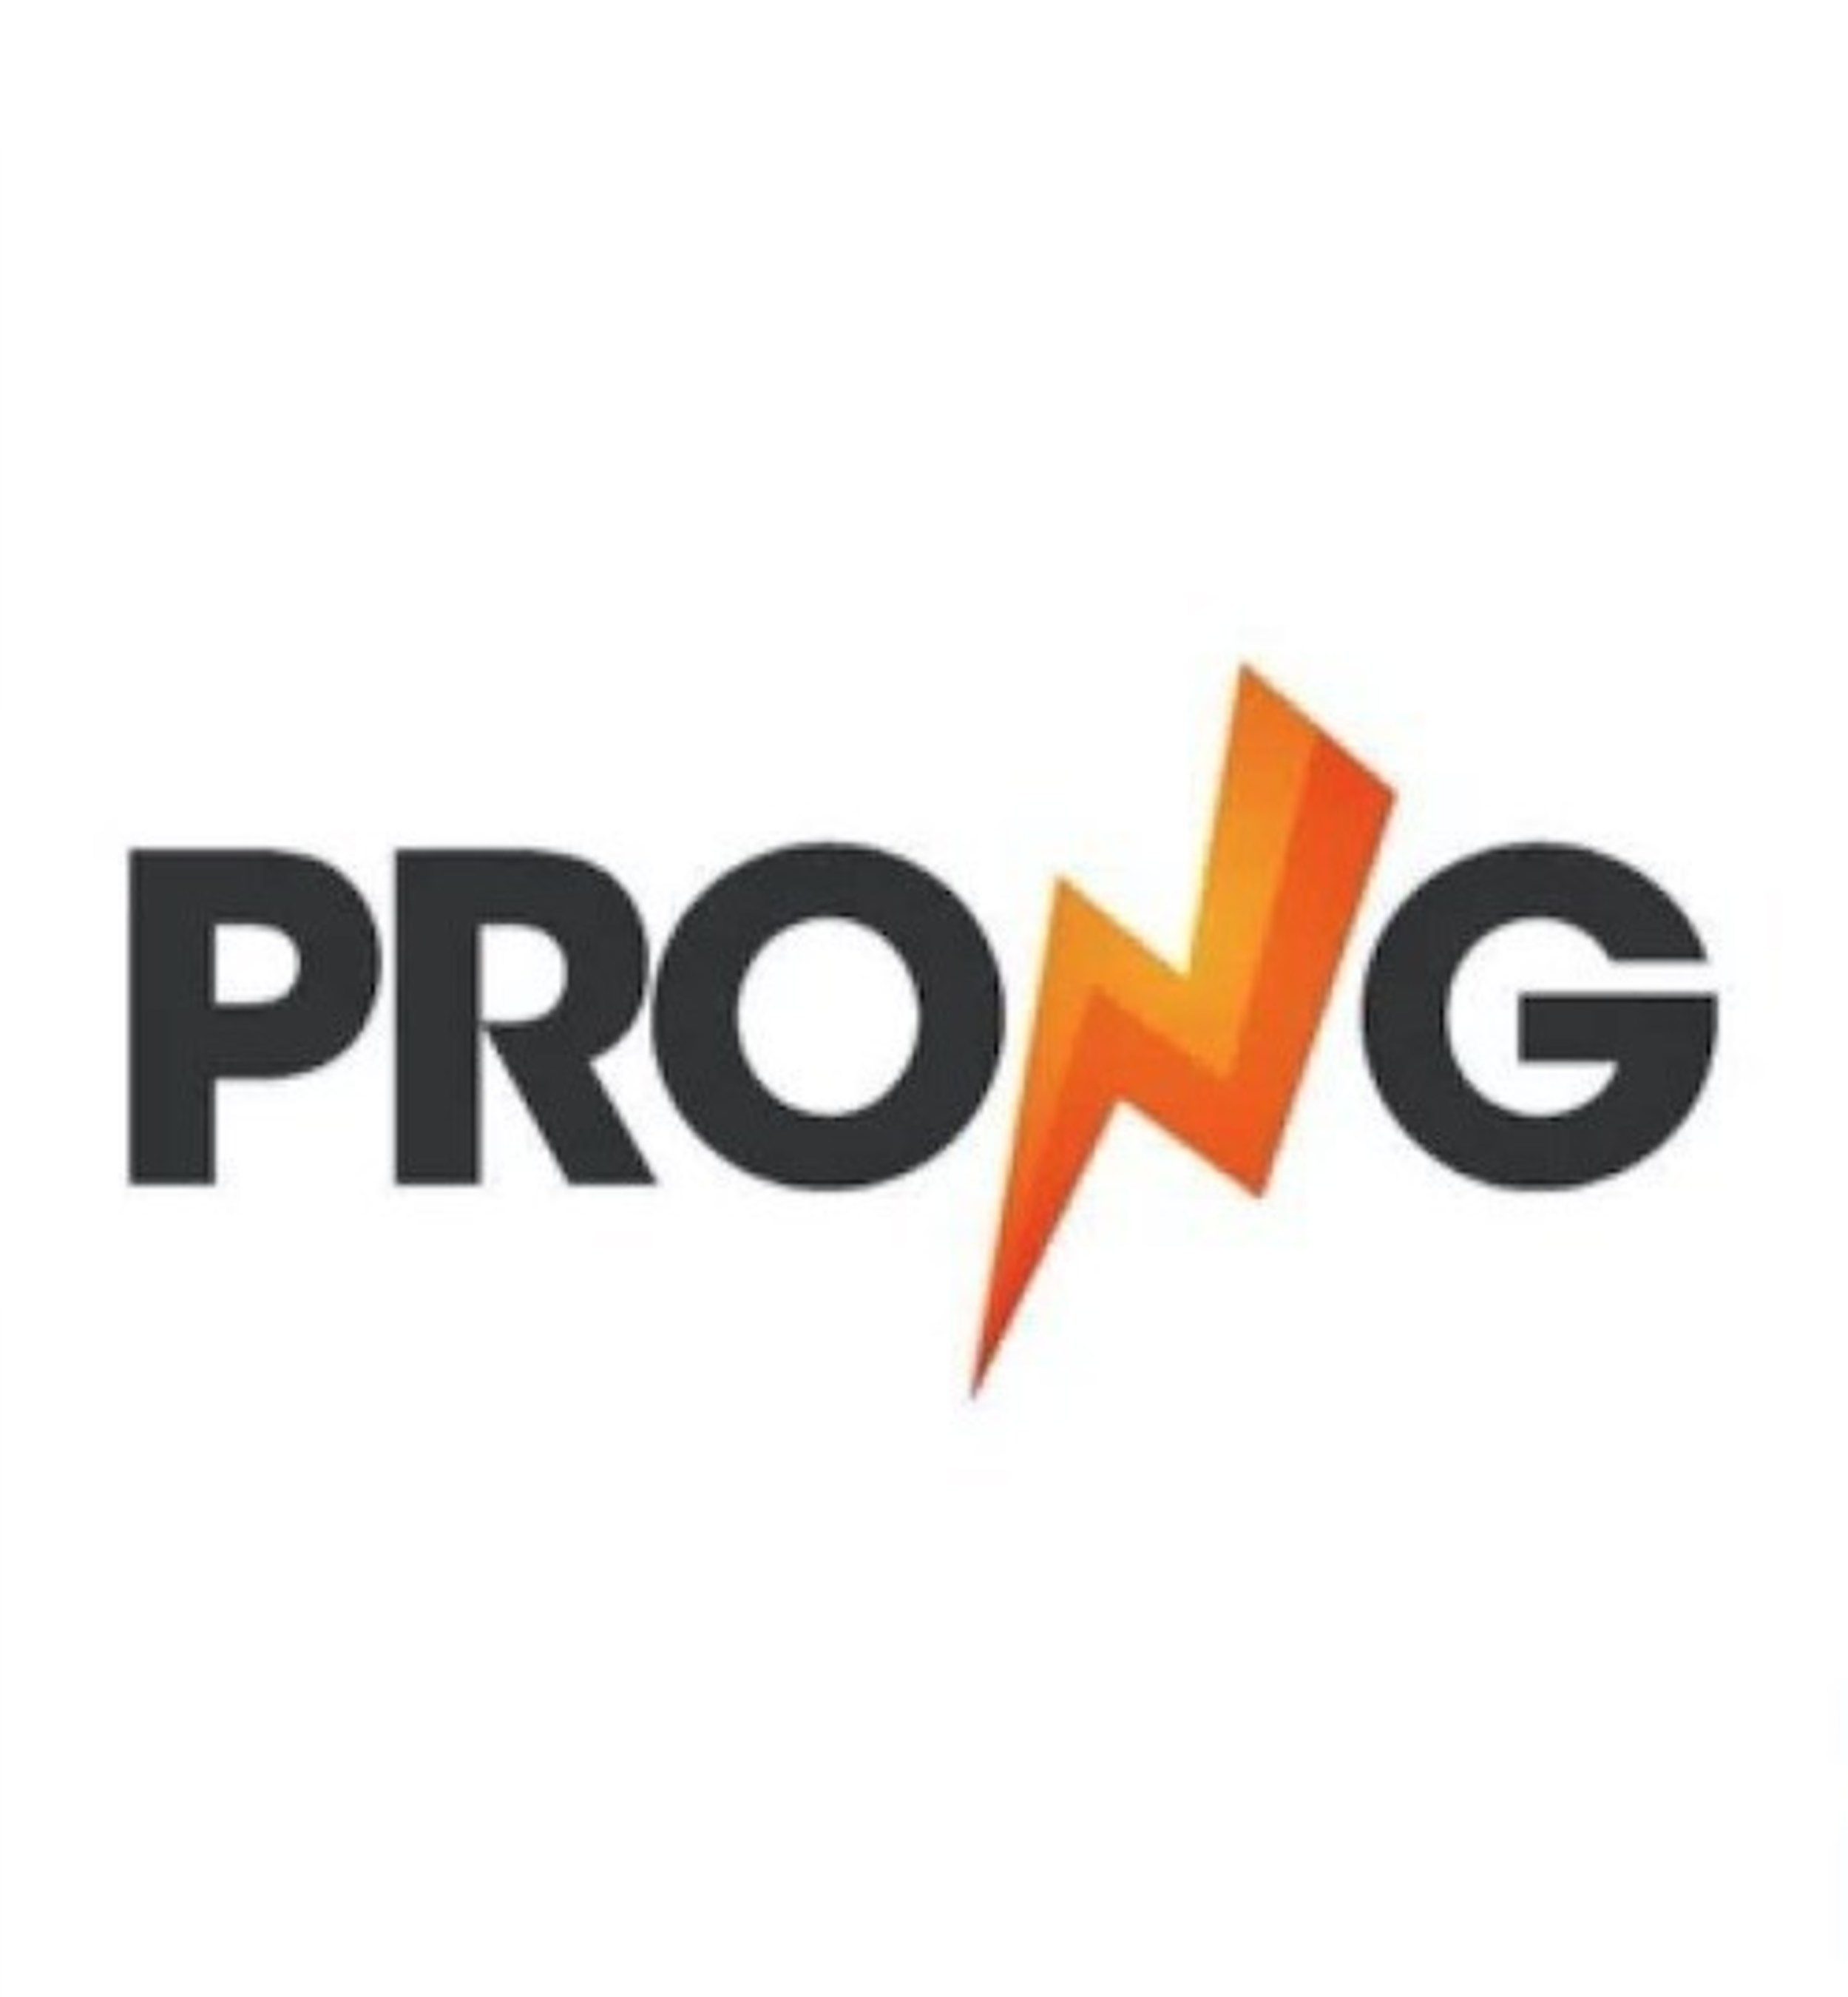 Prong Reveals 2 Innovative Photography Accessories for the iPhone 6